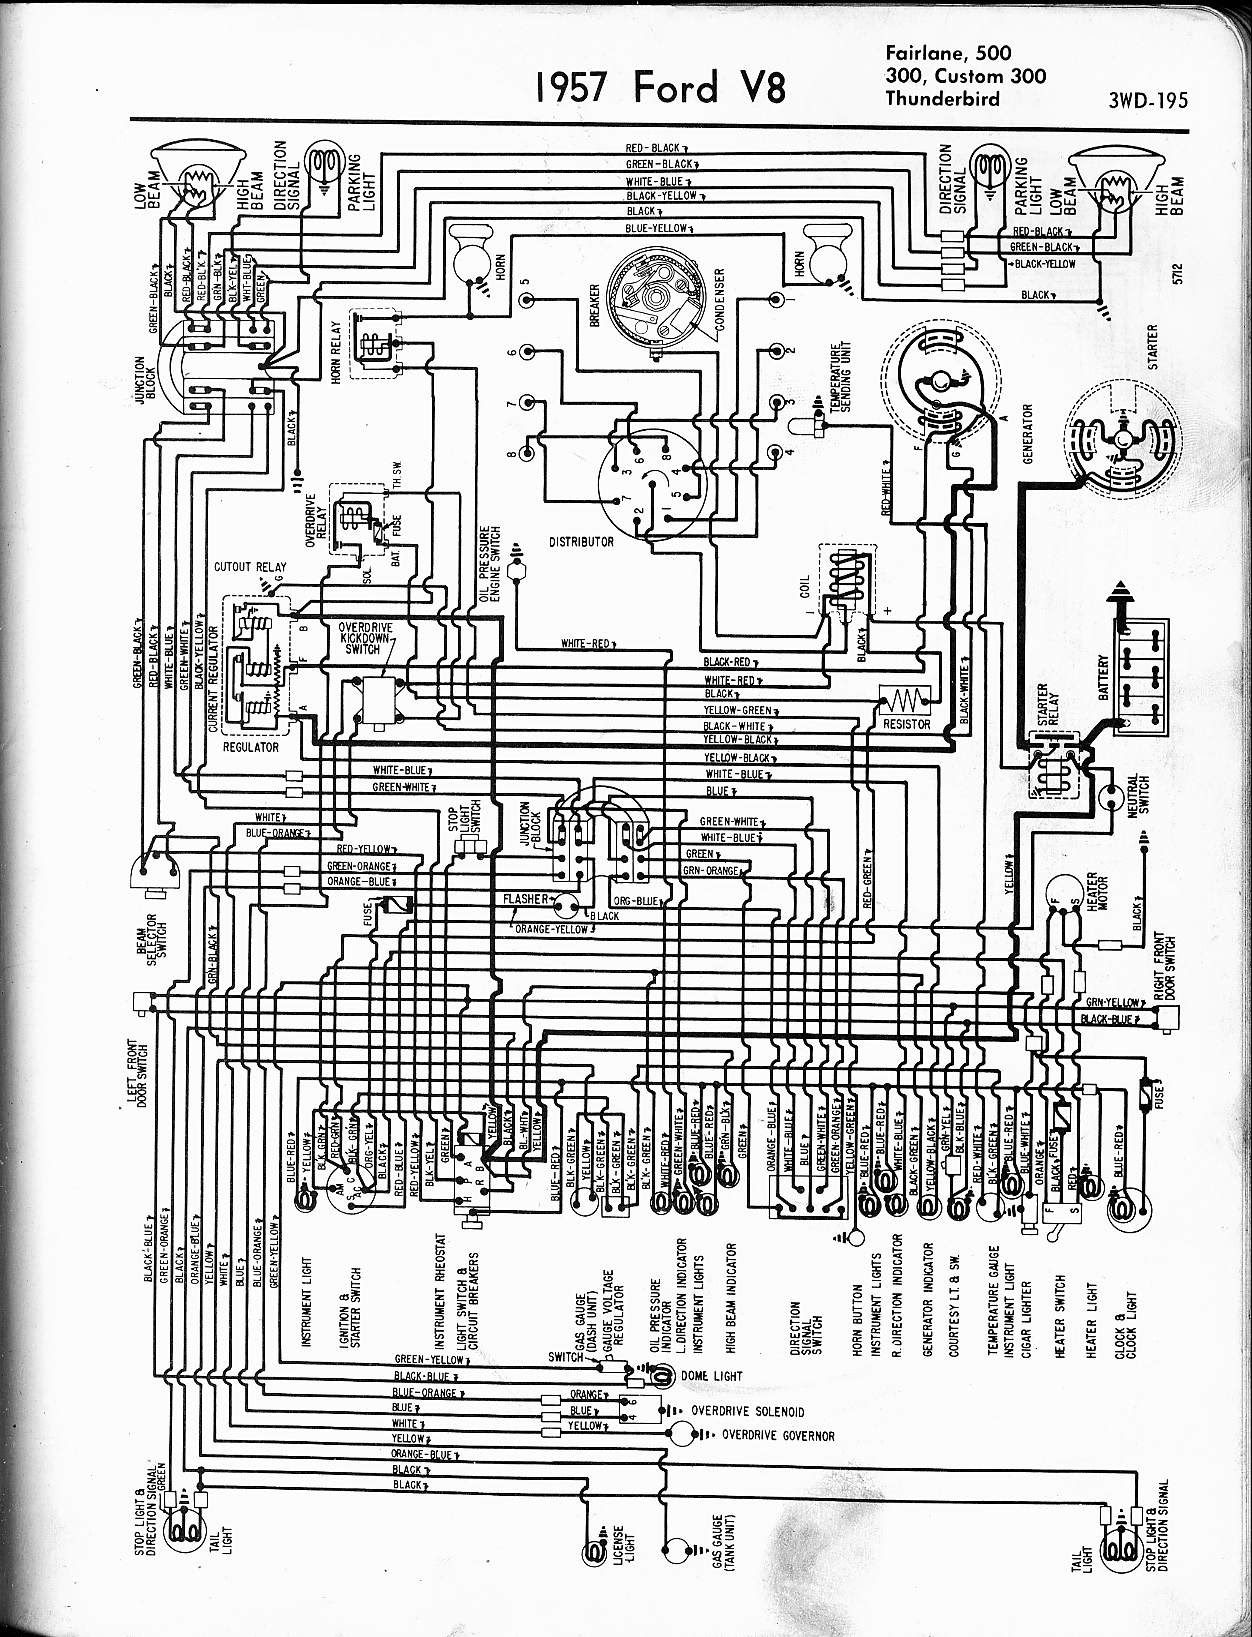 1955 Ford Fairlane Wiring Diagram Wiring Diagram View A View A Zaafran It